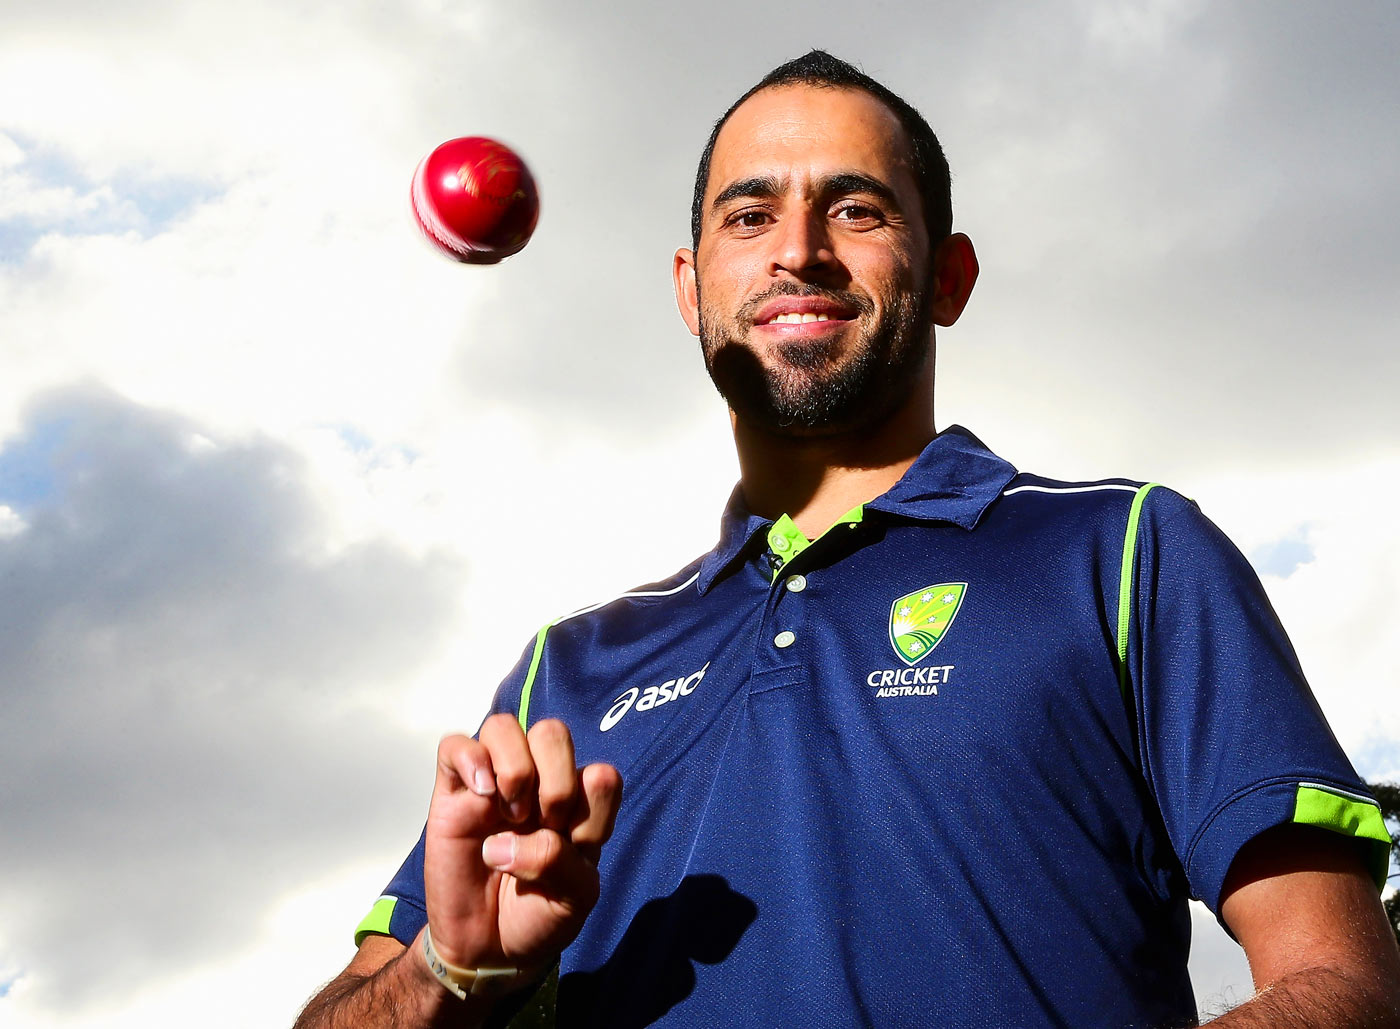 From Merguz to Melbourne: Fawad Ahmed's rise from obscurity has been inspirational